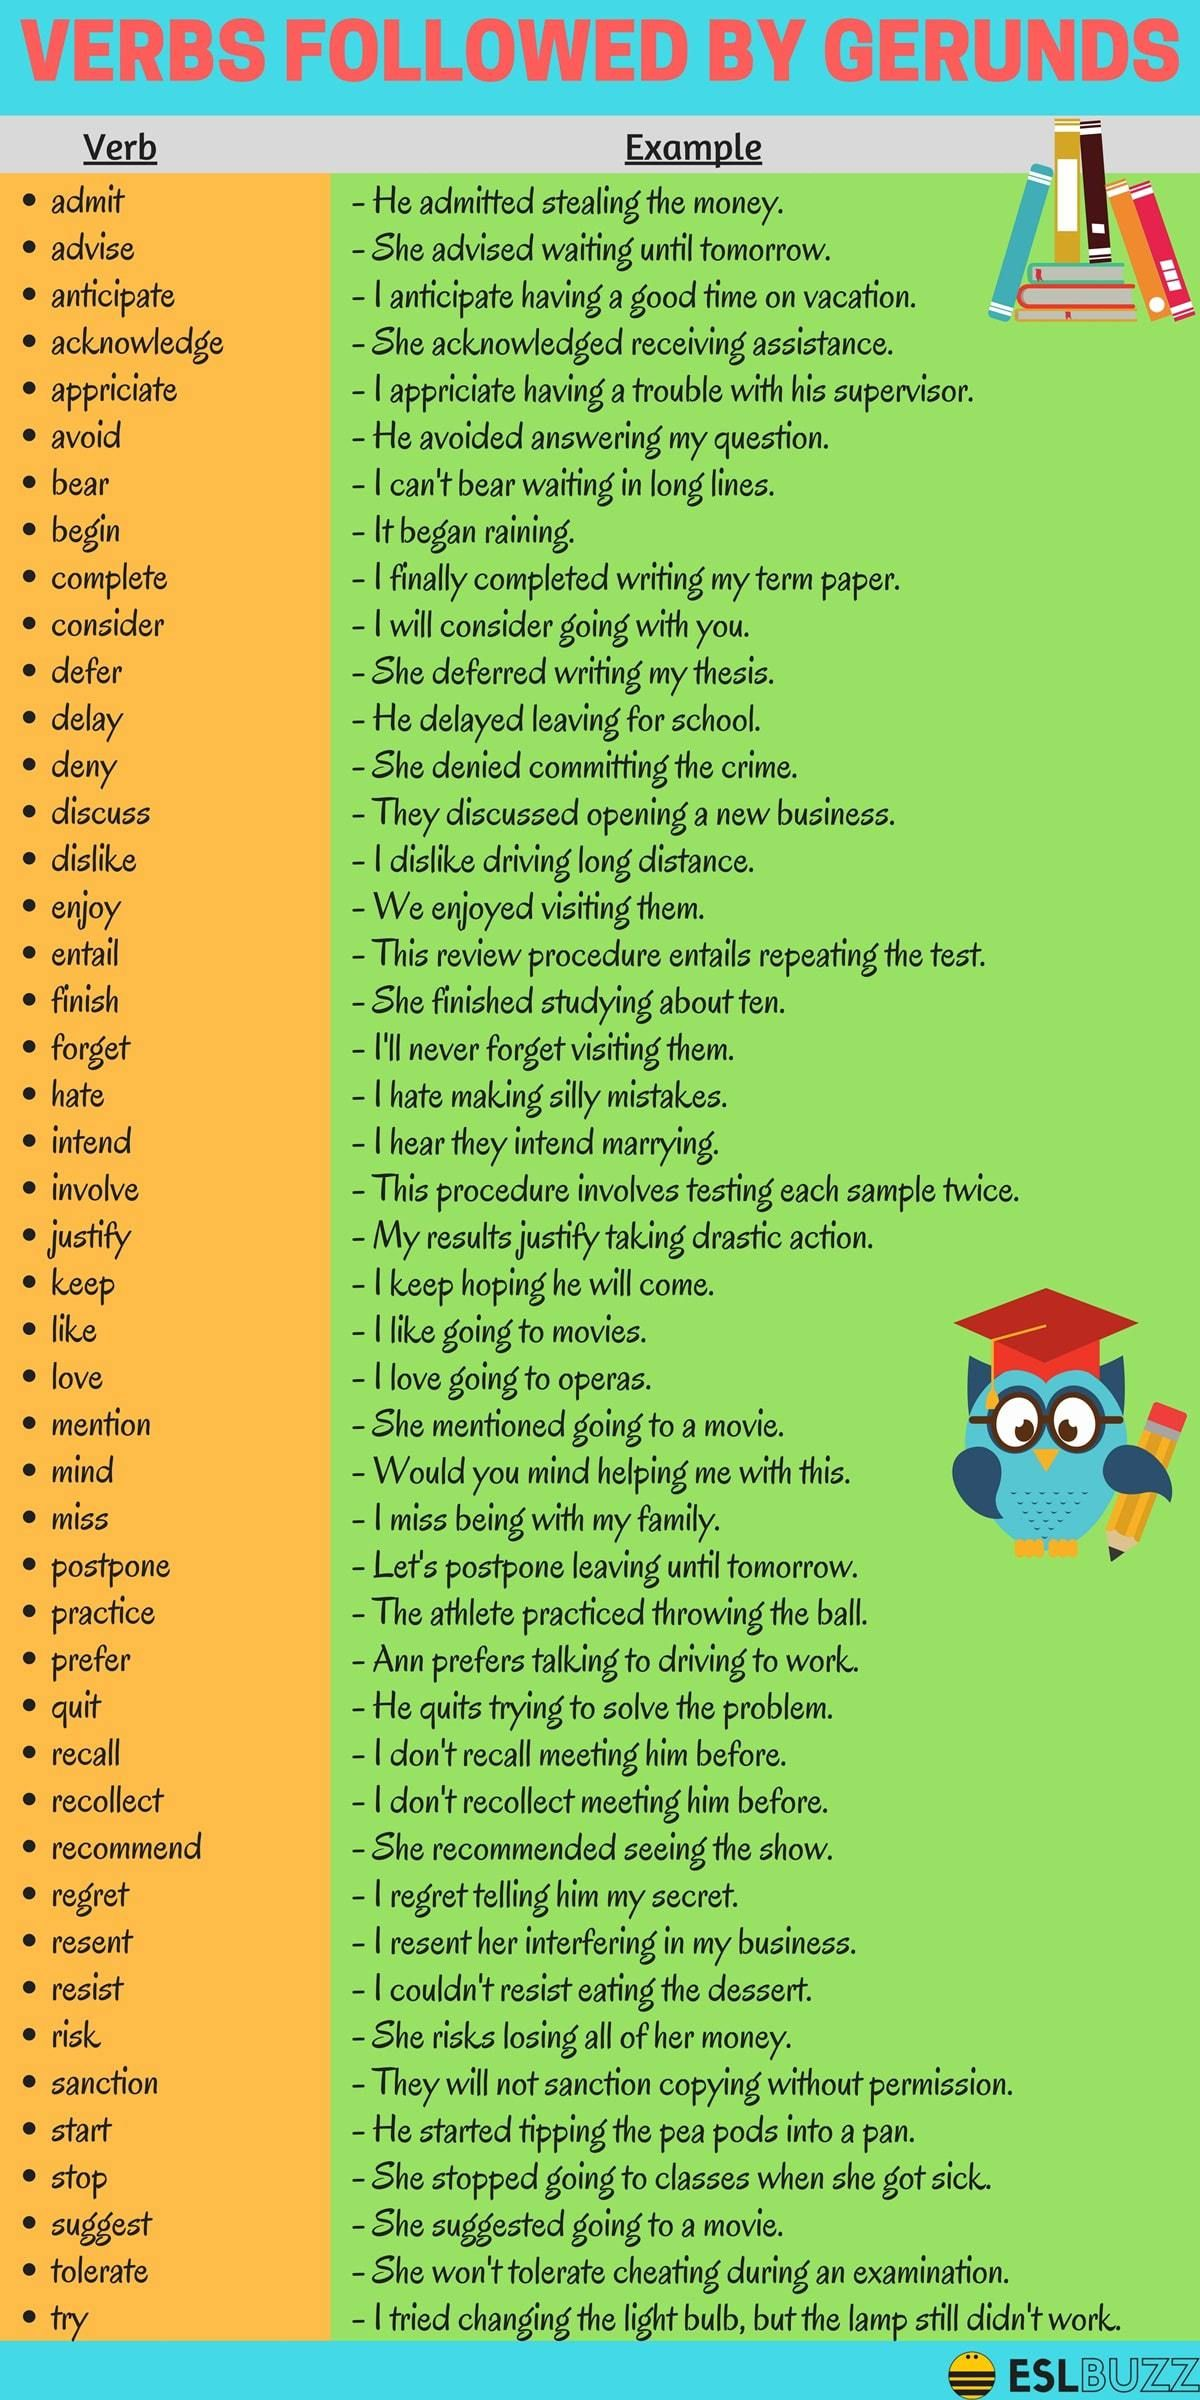 Verbs Followed by Gerunds in English | Learning | English ...